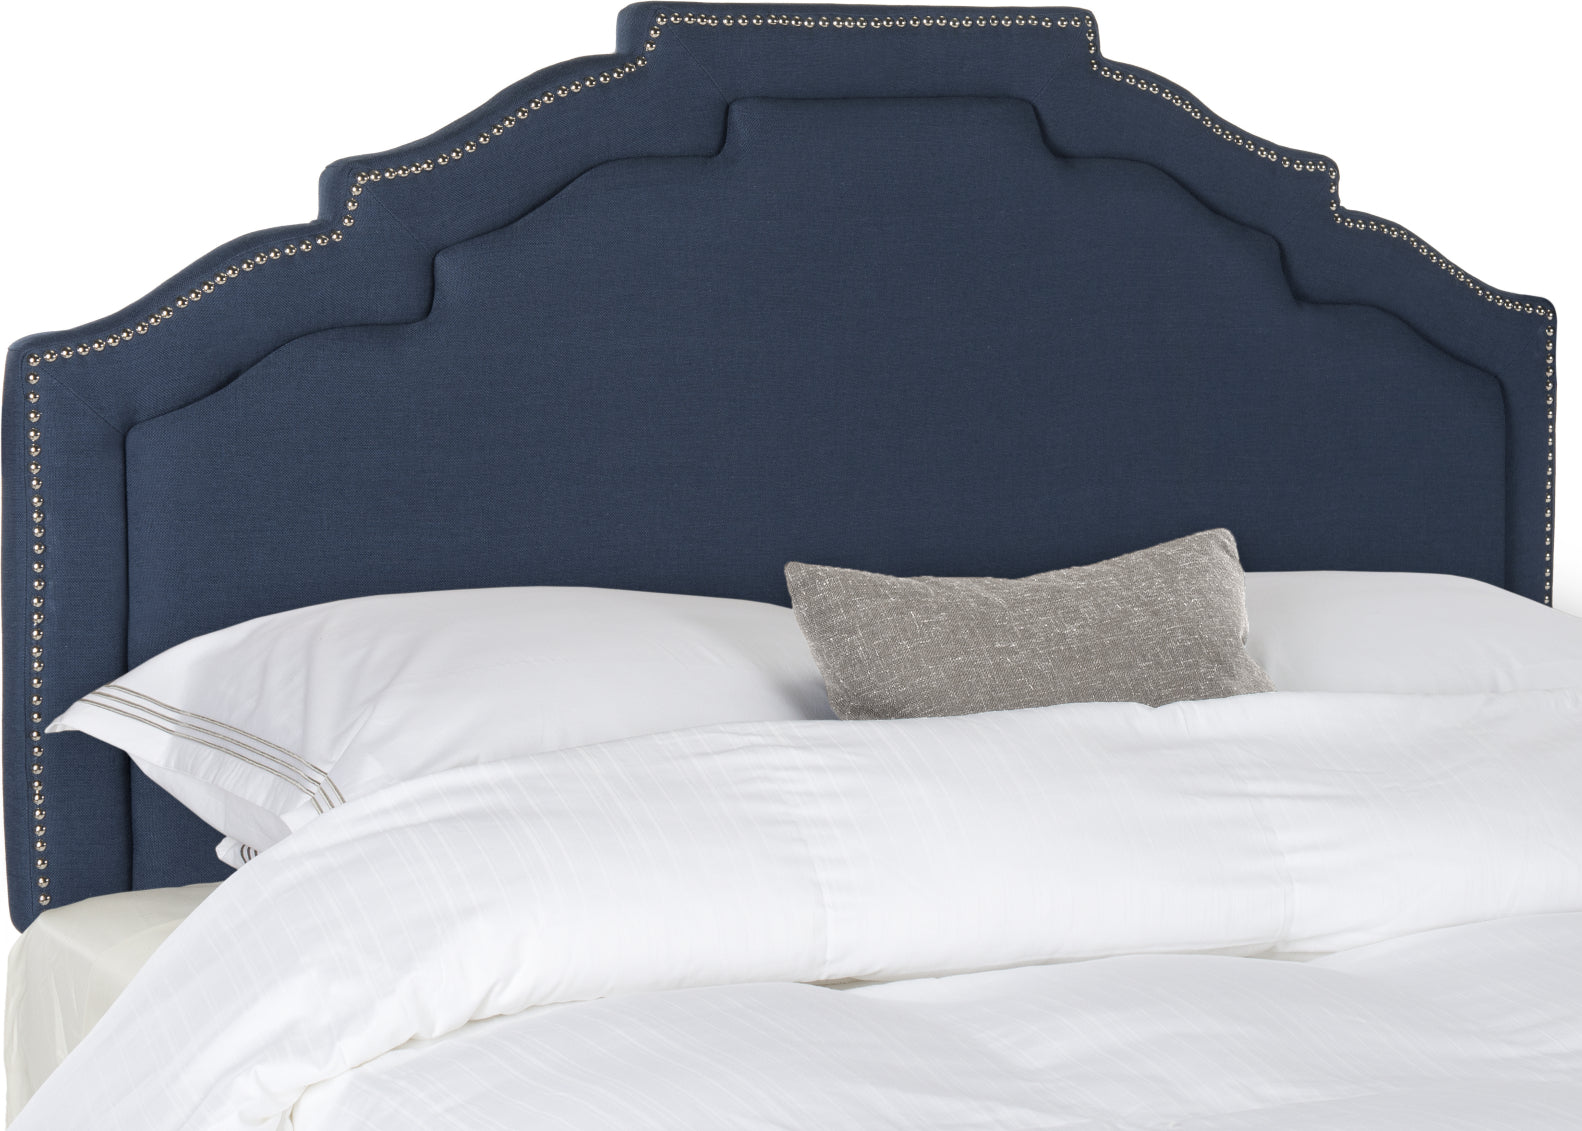 Safavieh Alexia Steel Blue Linen Headboard-Silver Nail Head Bedding main image